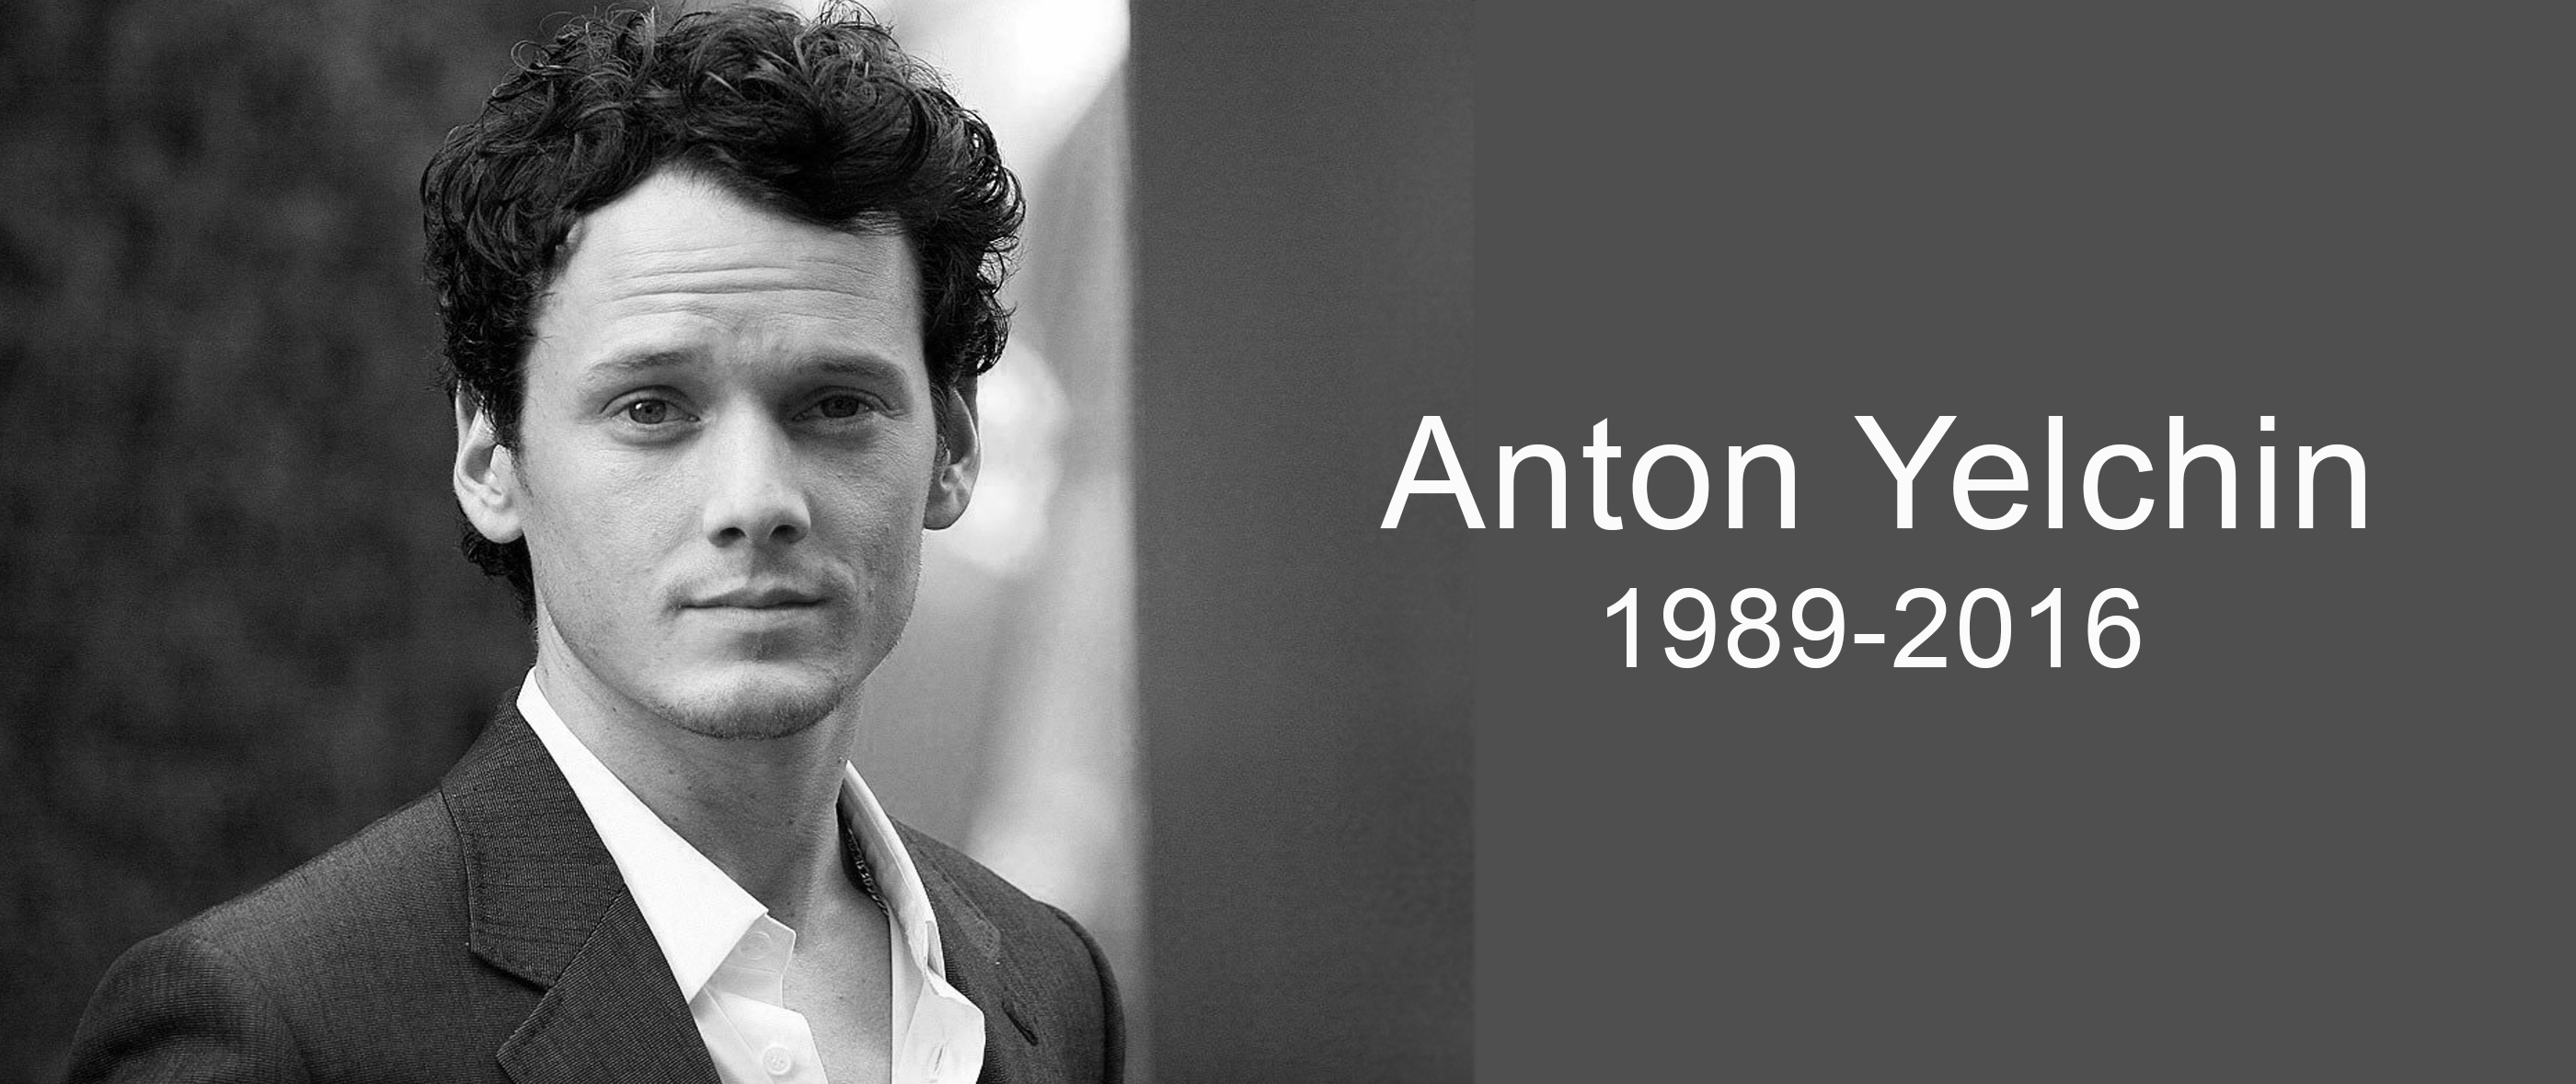 Anton Yelchin Photos